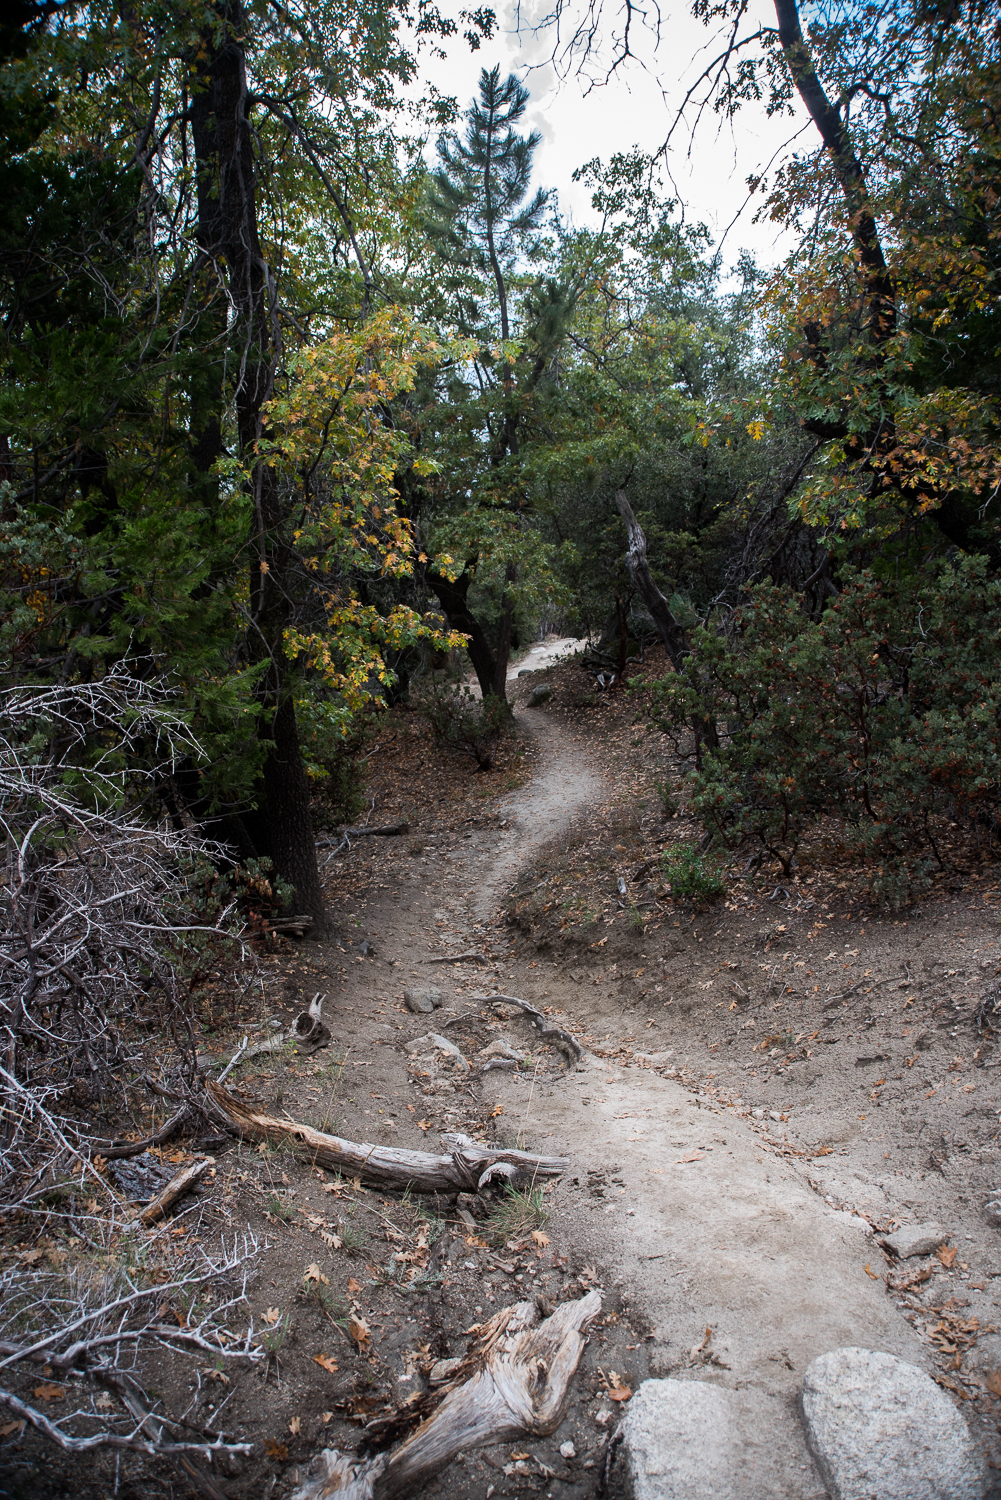 The majority of the trail is single track surrounded by trees and boulders